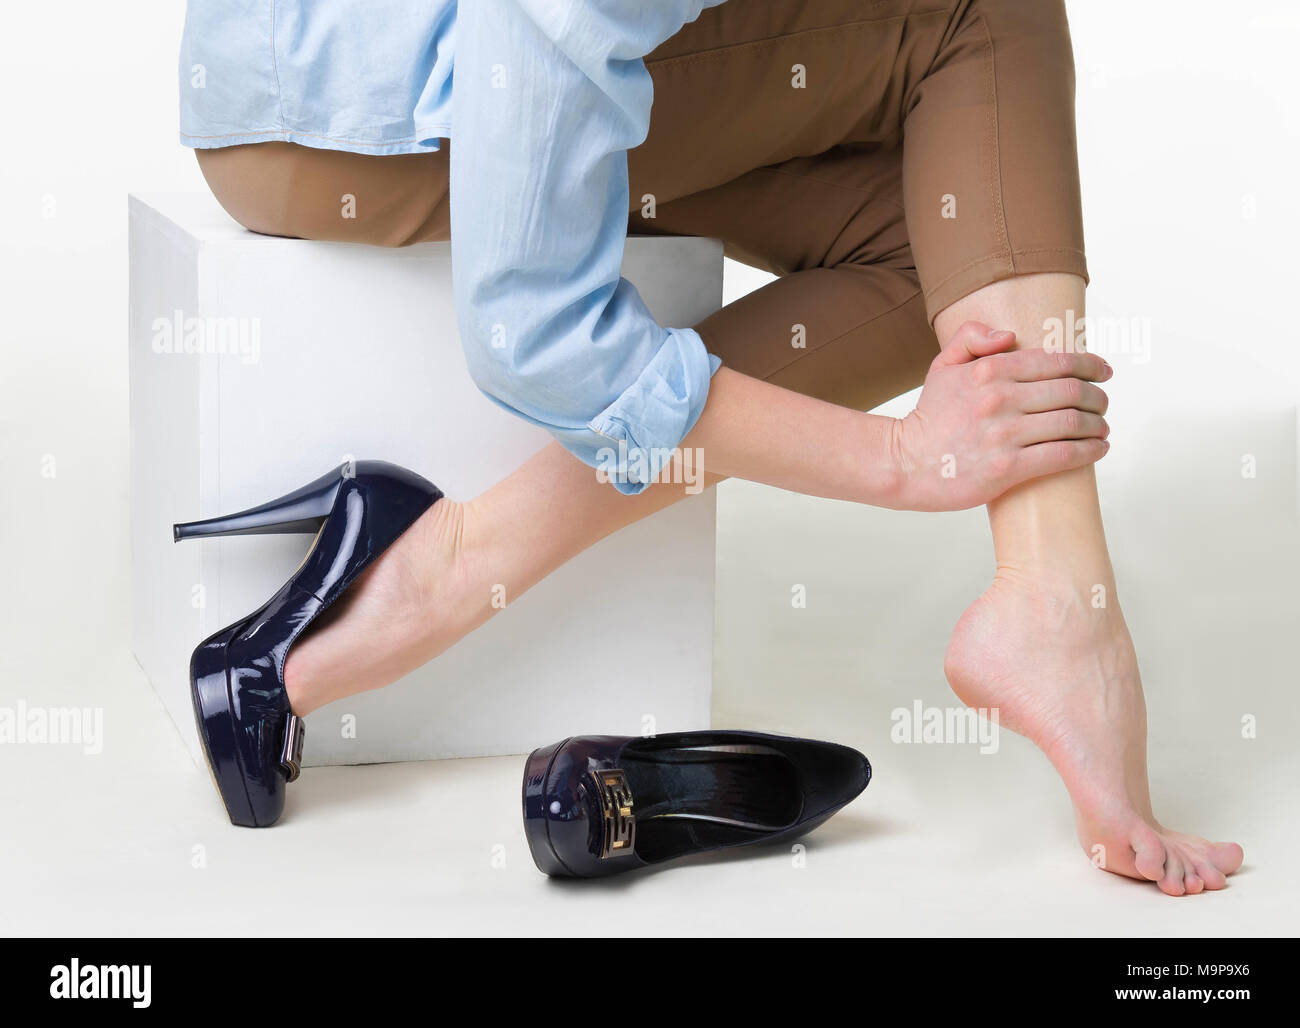 Cropped image of woman in high heels massaging her tired legs - Stock Image